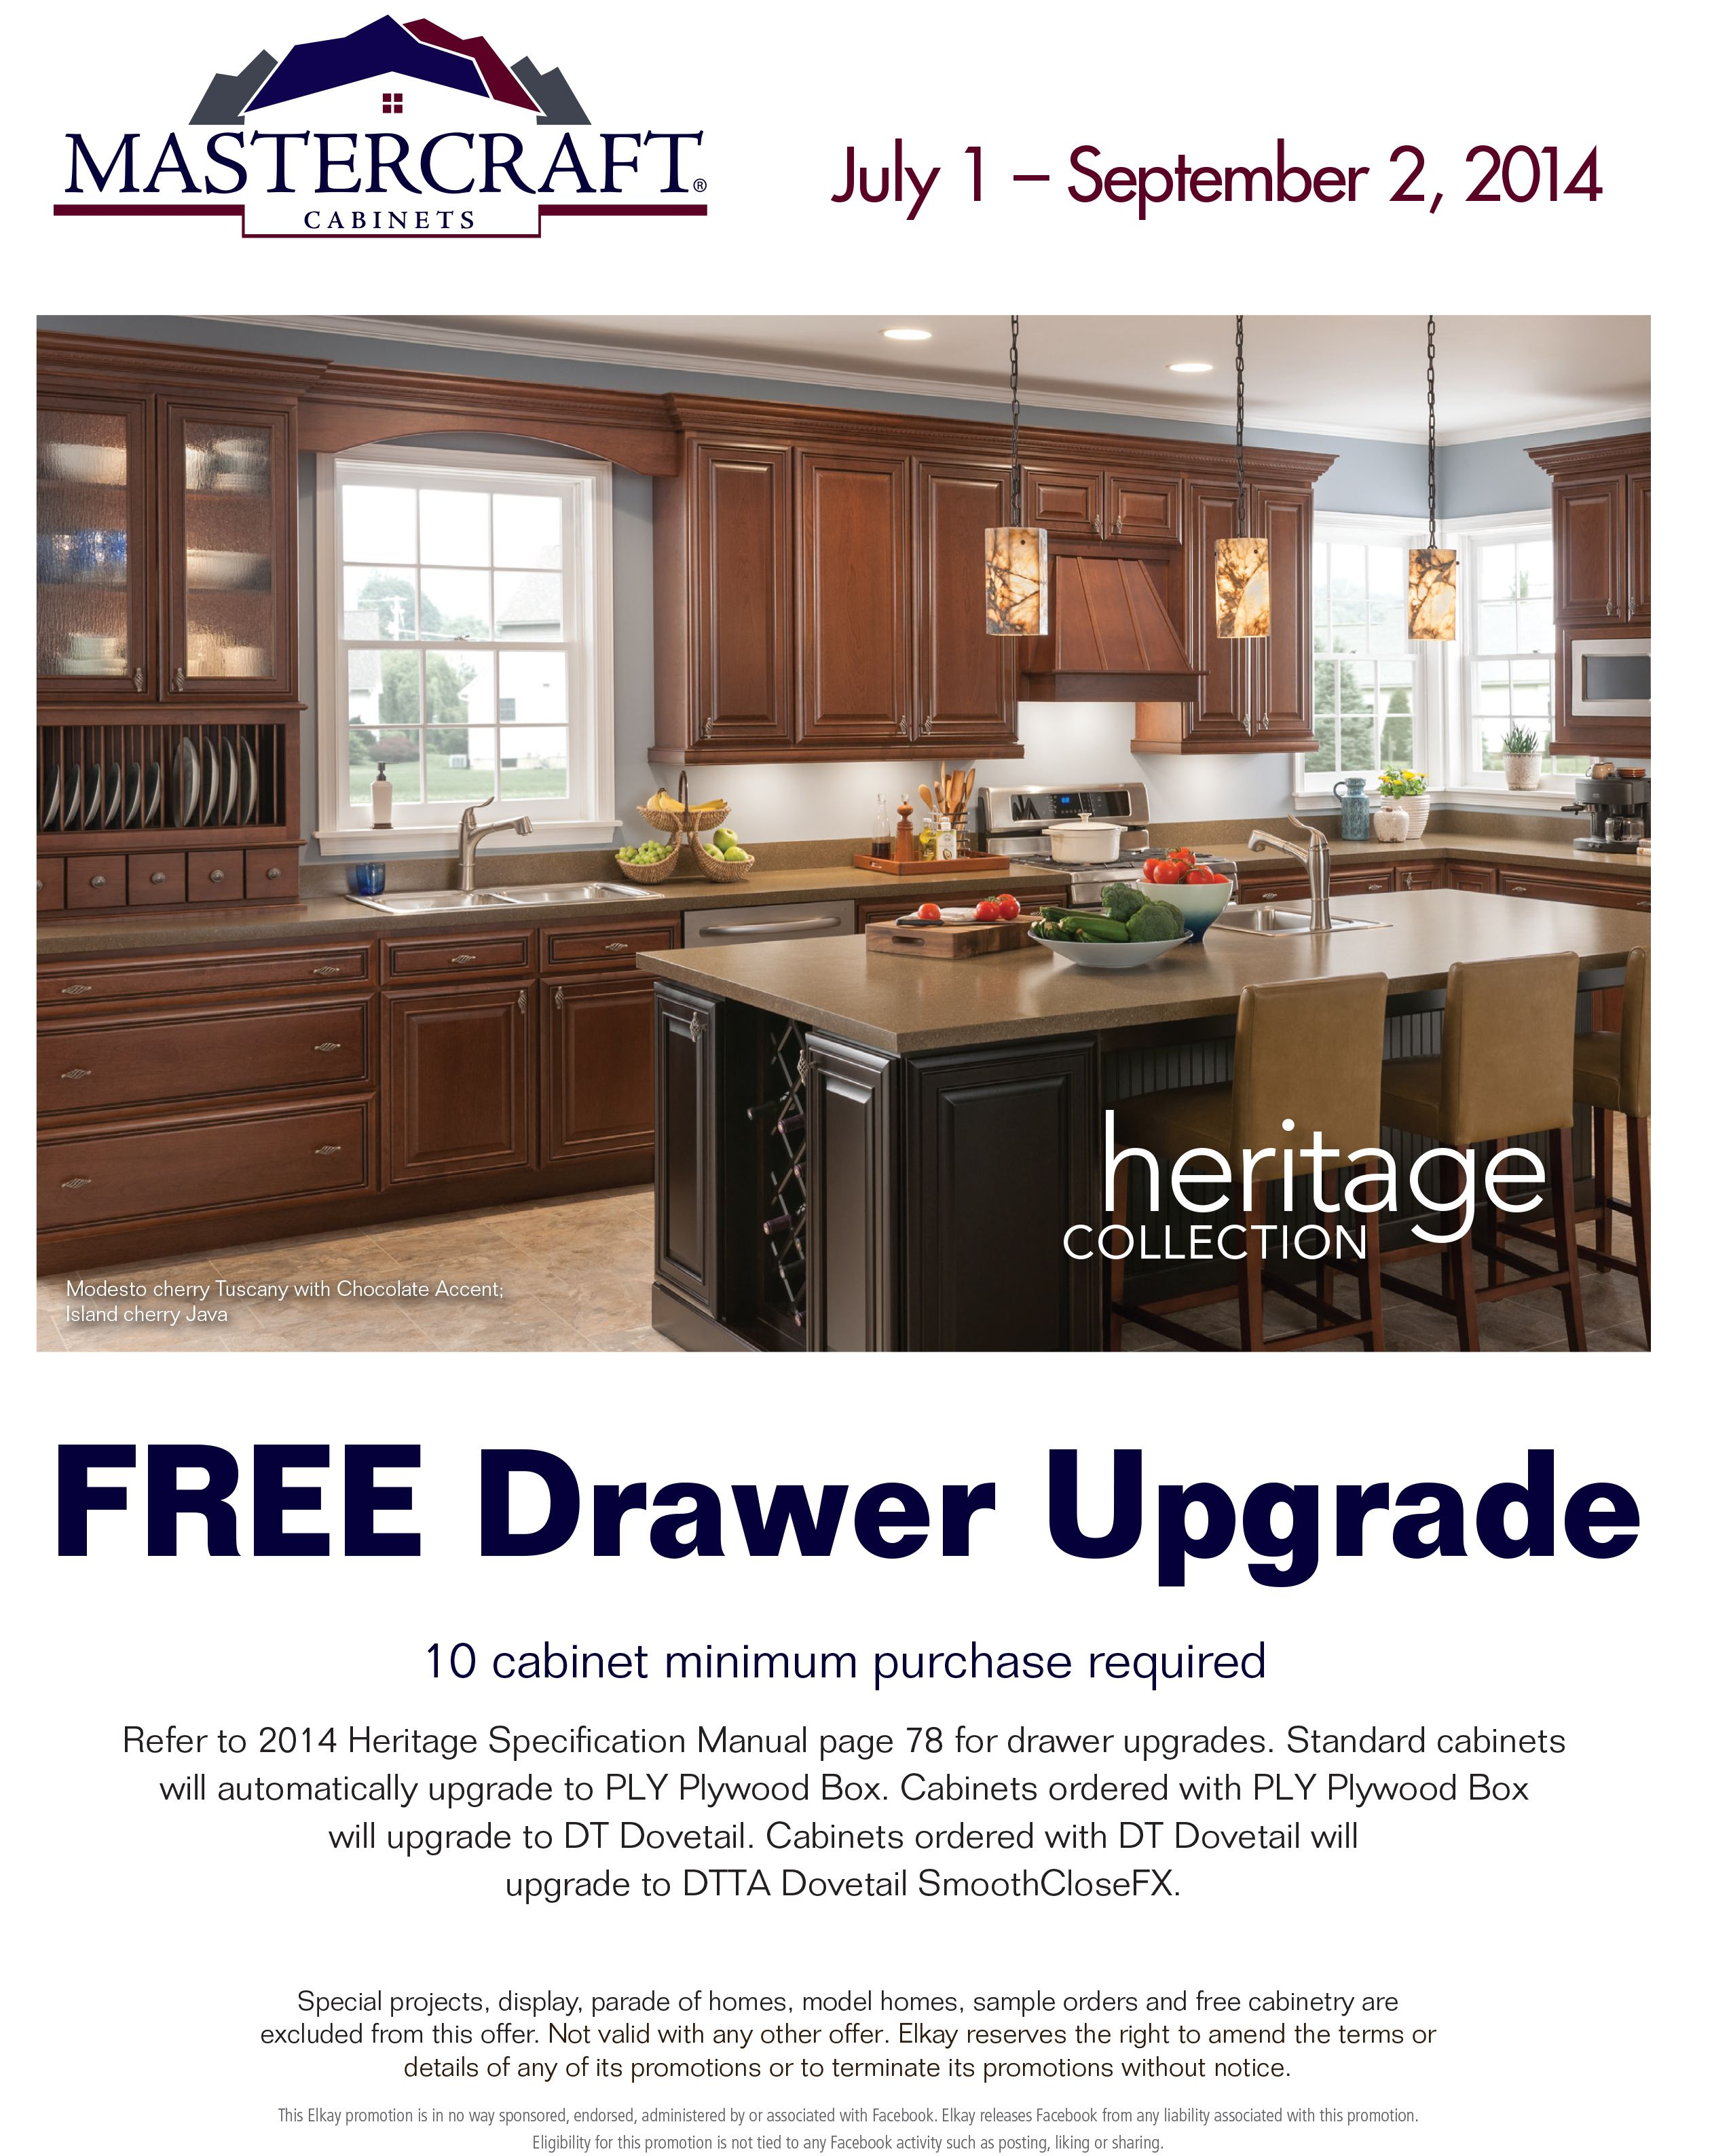 For A Limited Time We Are Offering Mastercraft Cabinets With A FREE Drawer  Upgrade! Come